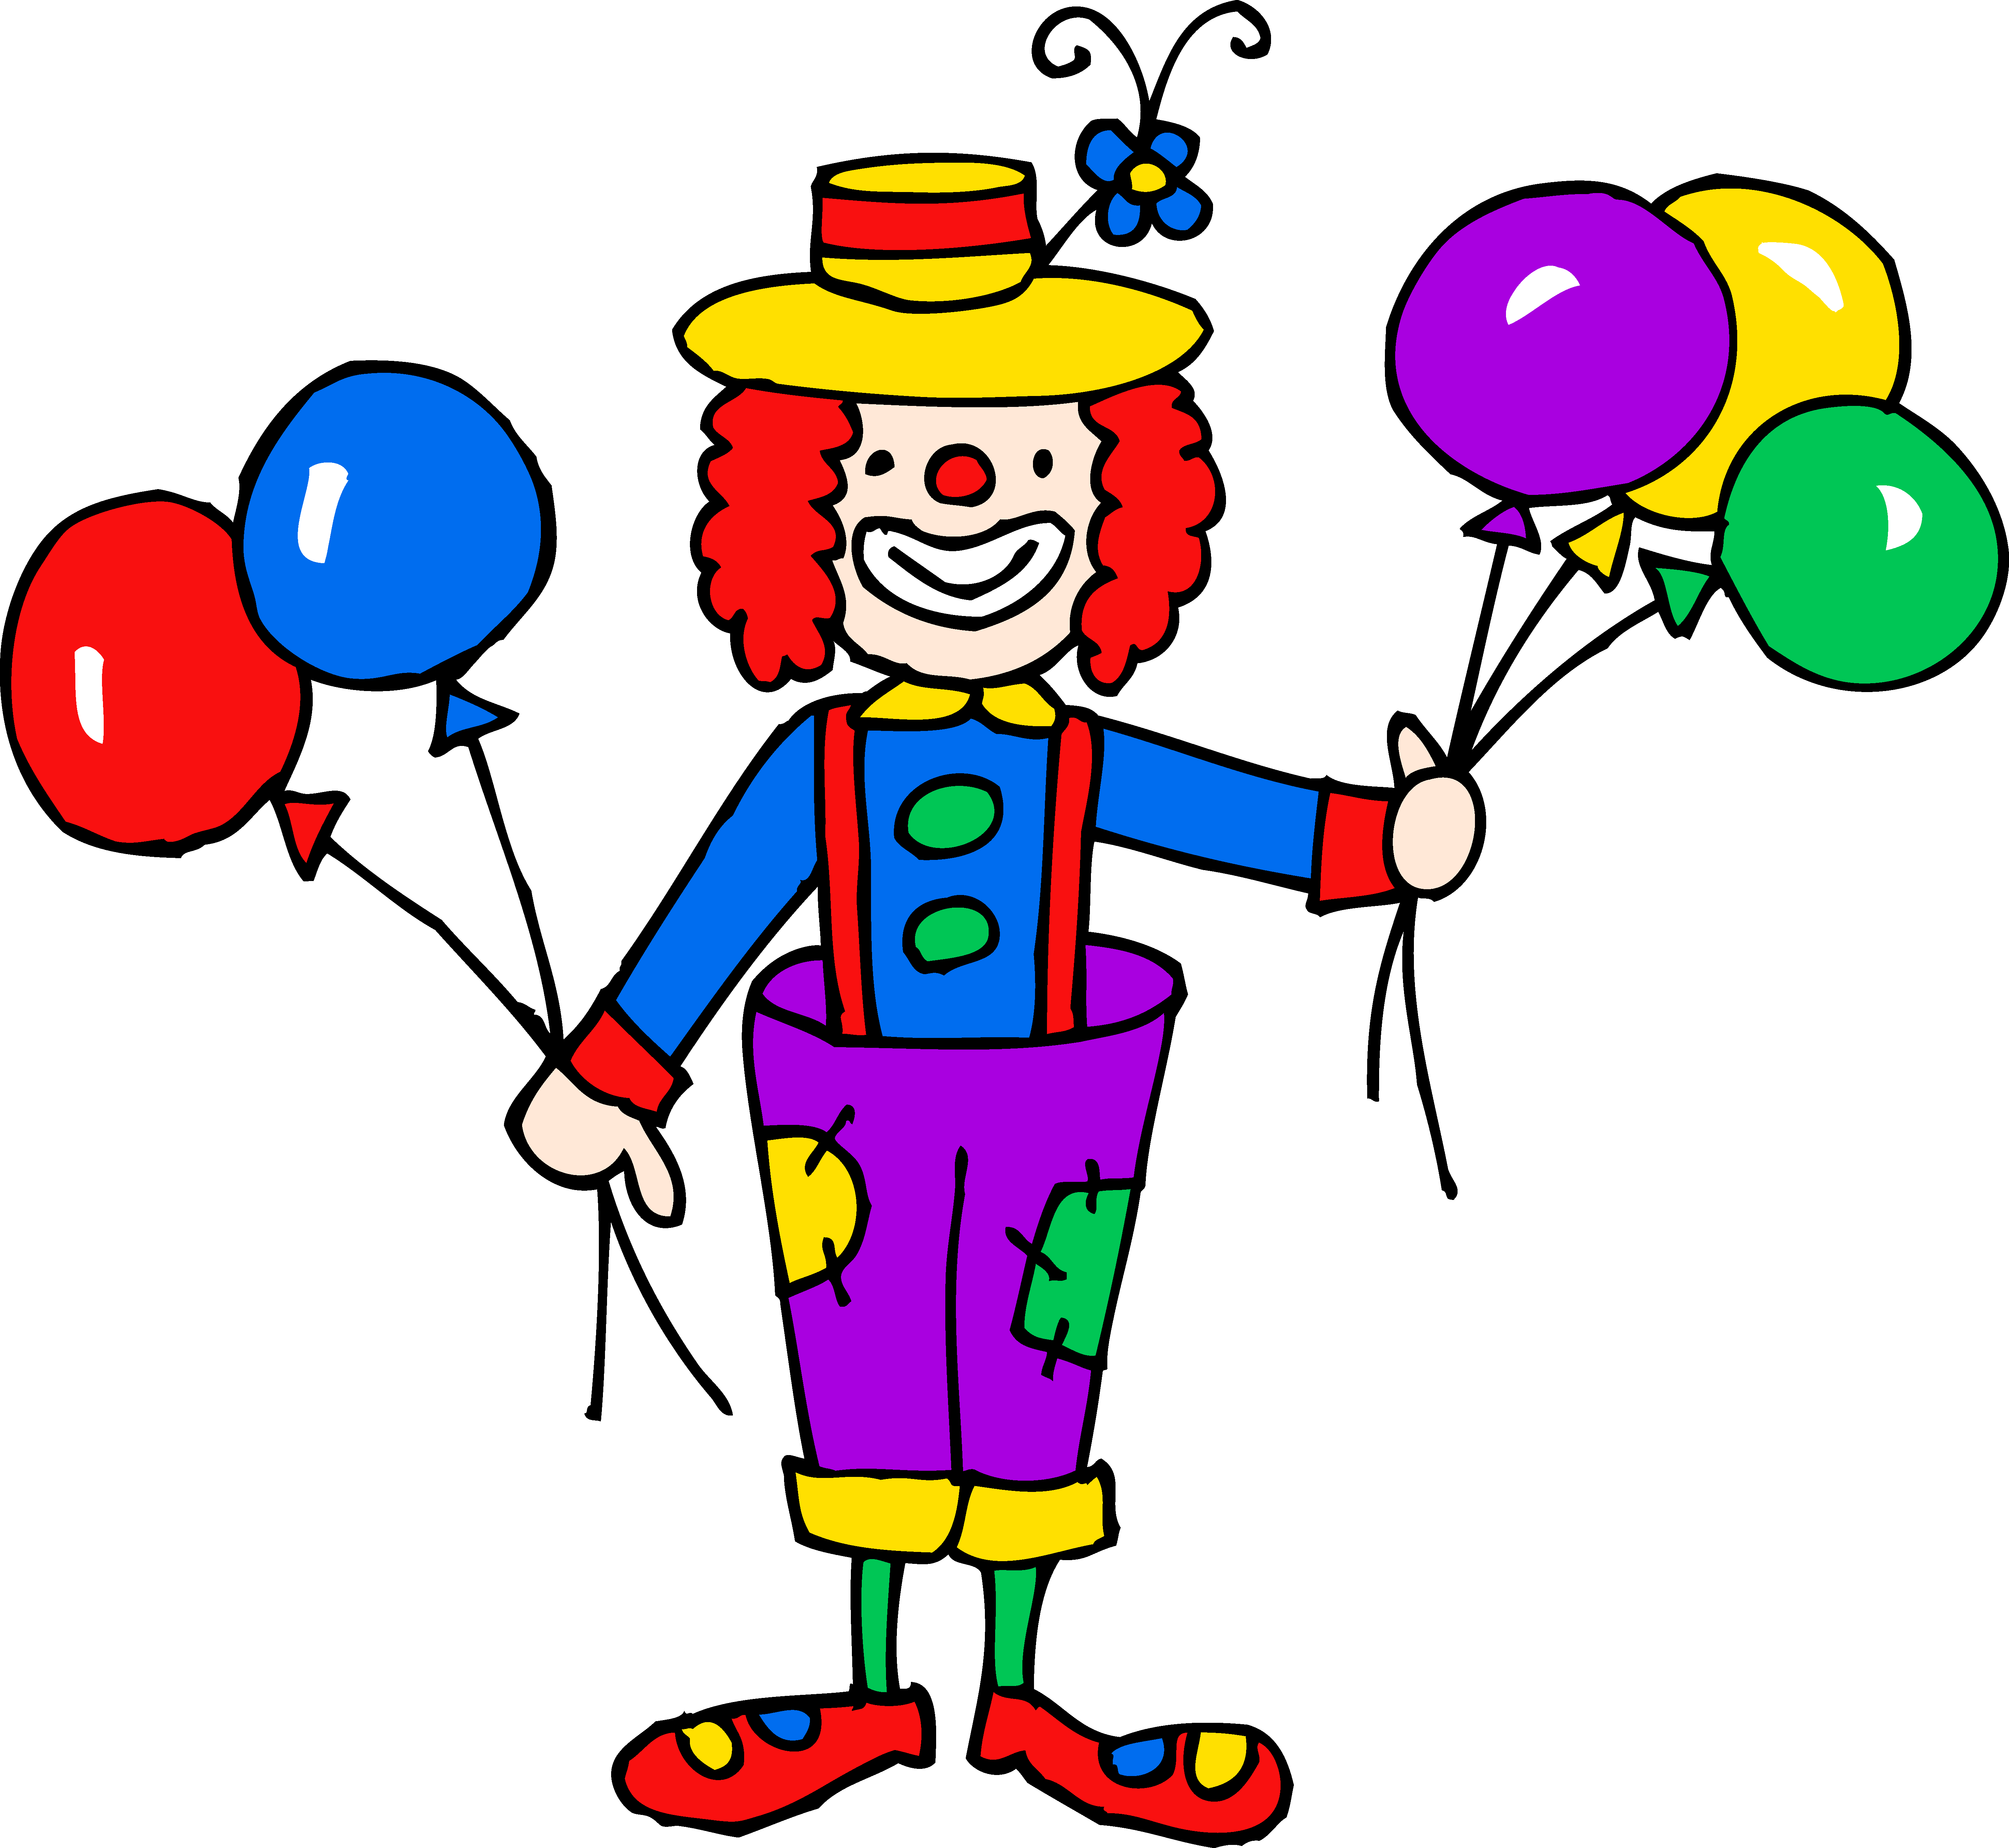 Fun clown png. Cute colorful clipart free